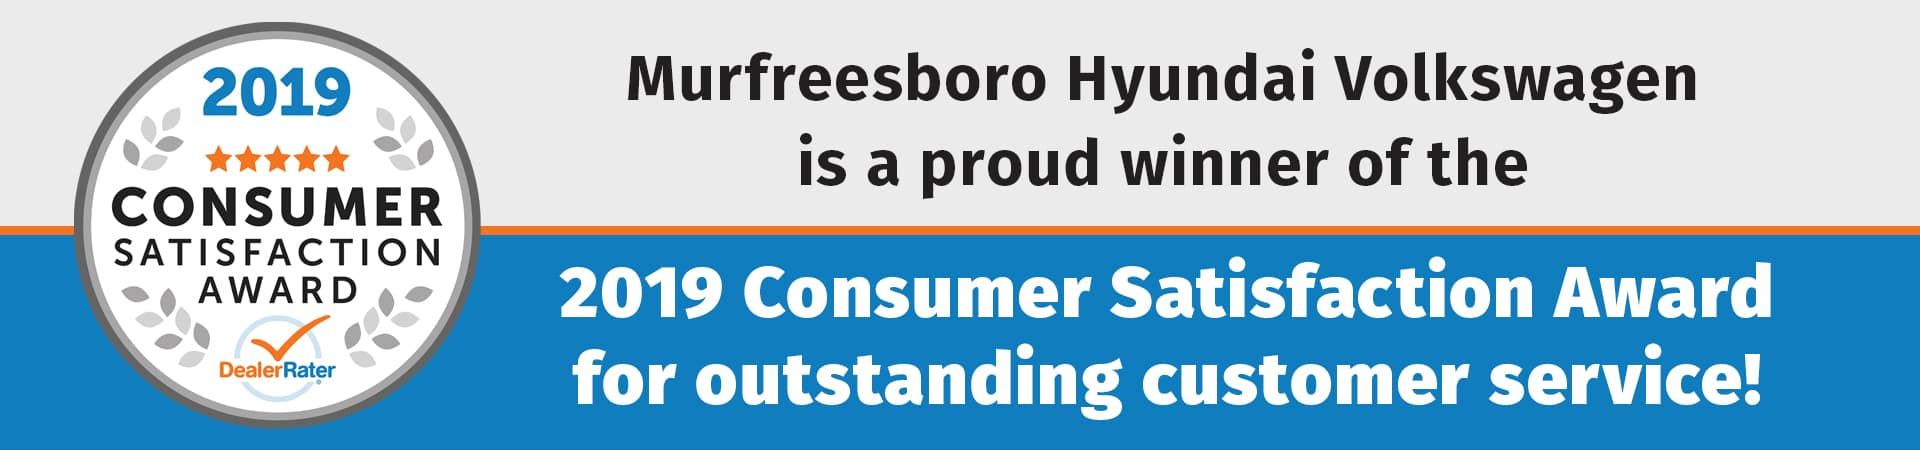 Murfreesboro Hyundai Volkswagen is a proud winner of the DealerRater 2019 Consumer Satisfaction Award in Murfreesboro TN